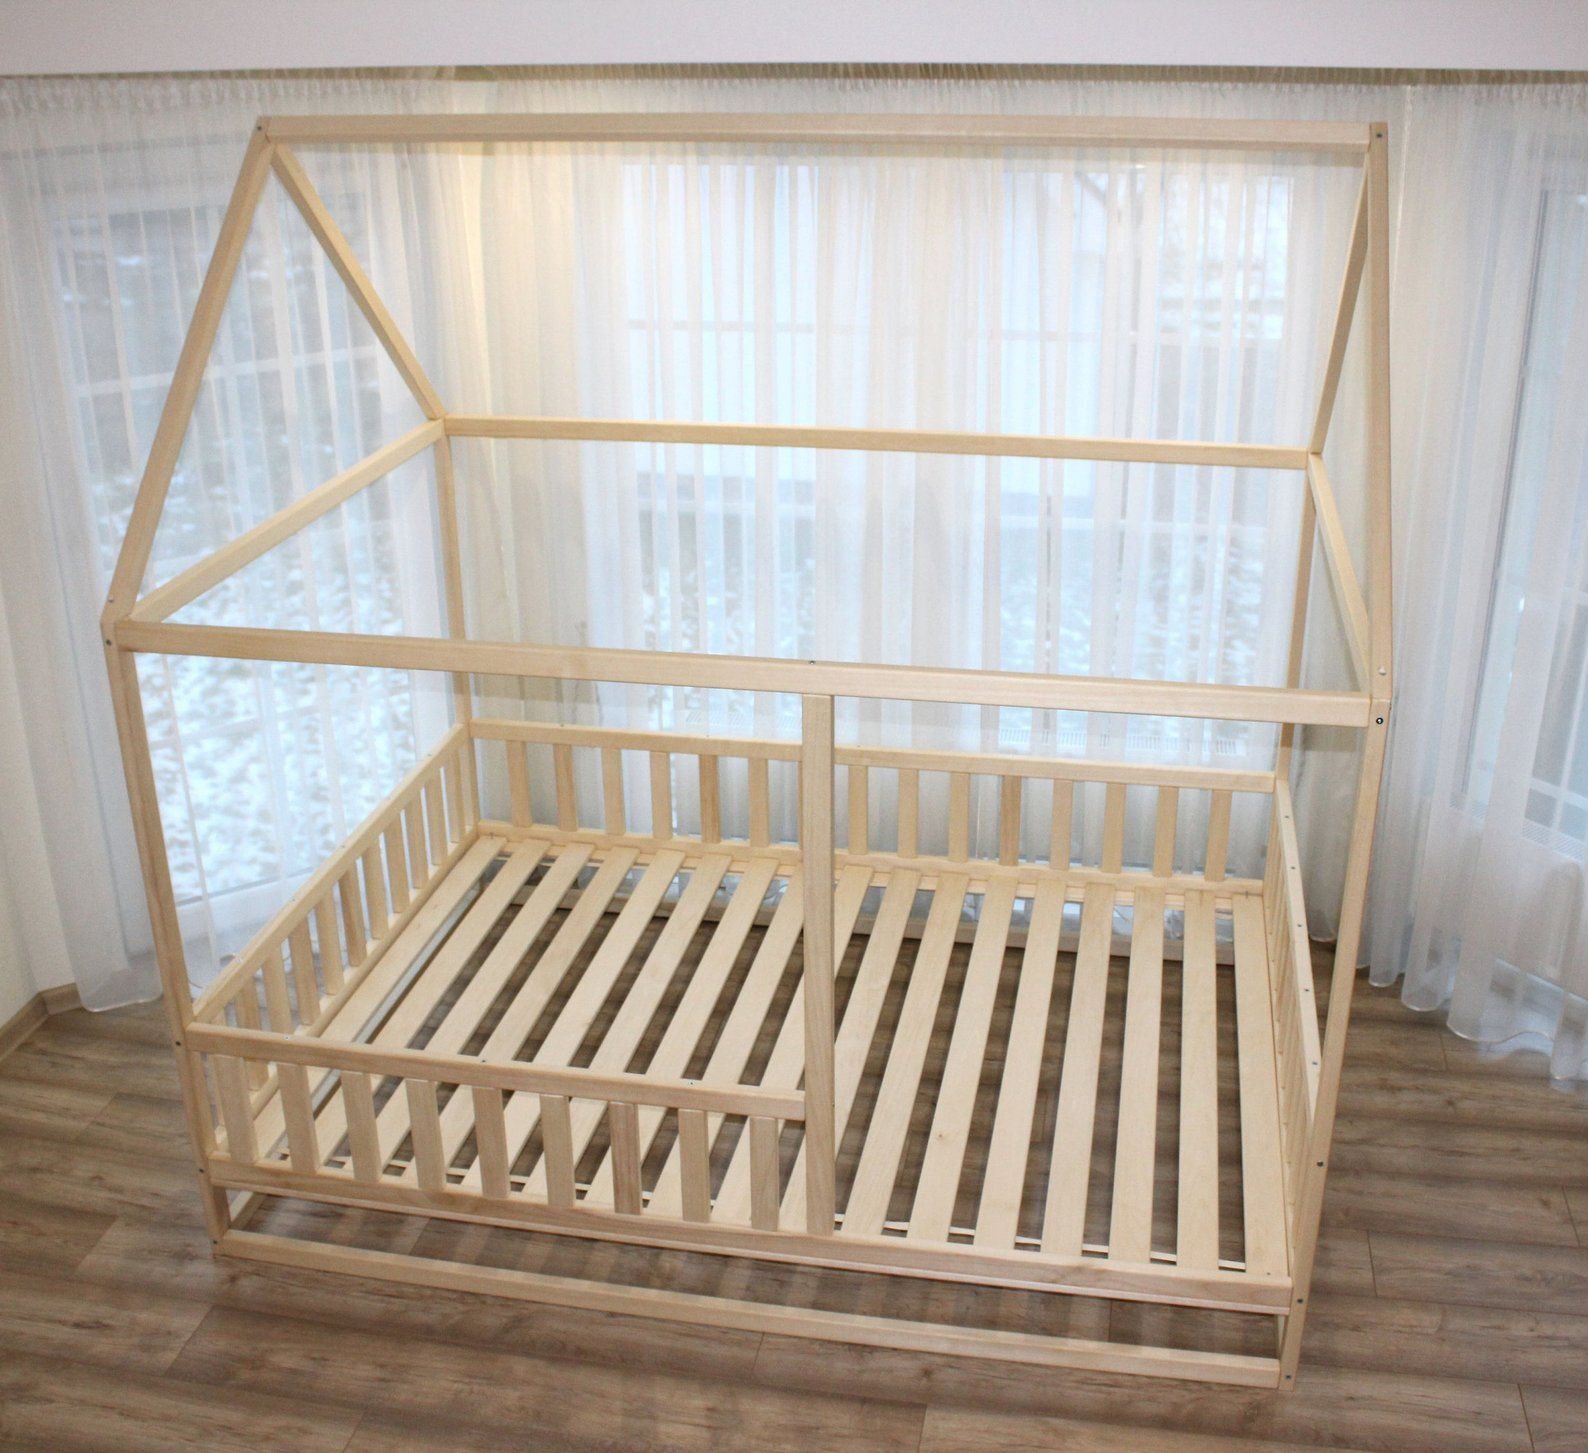 Lit Au Sol Montessori toddler bed, nursery crib, children bed, montessori bed, kid